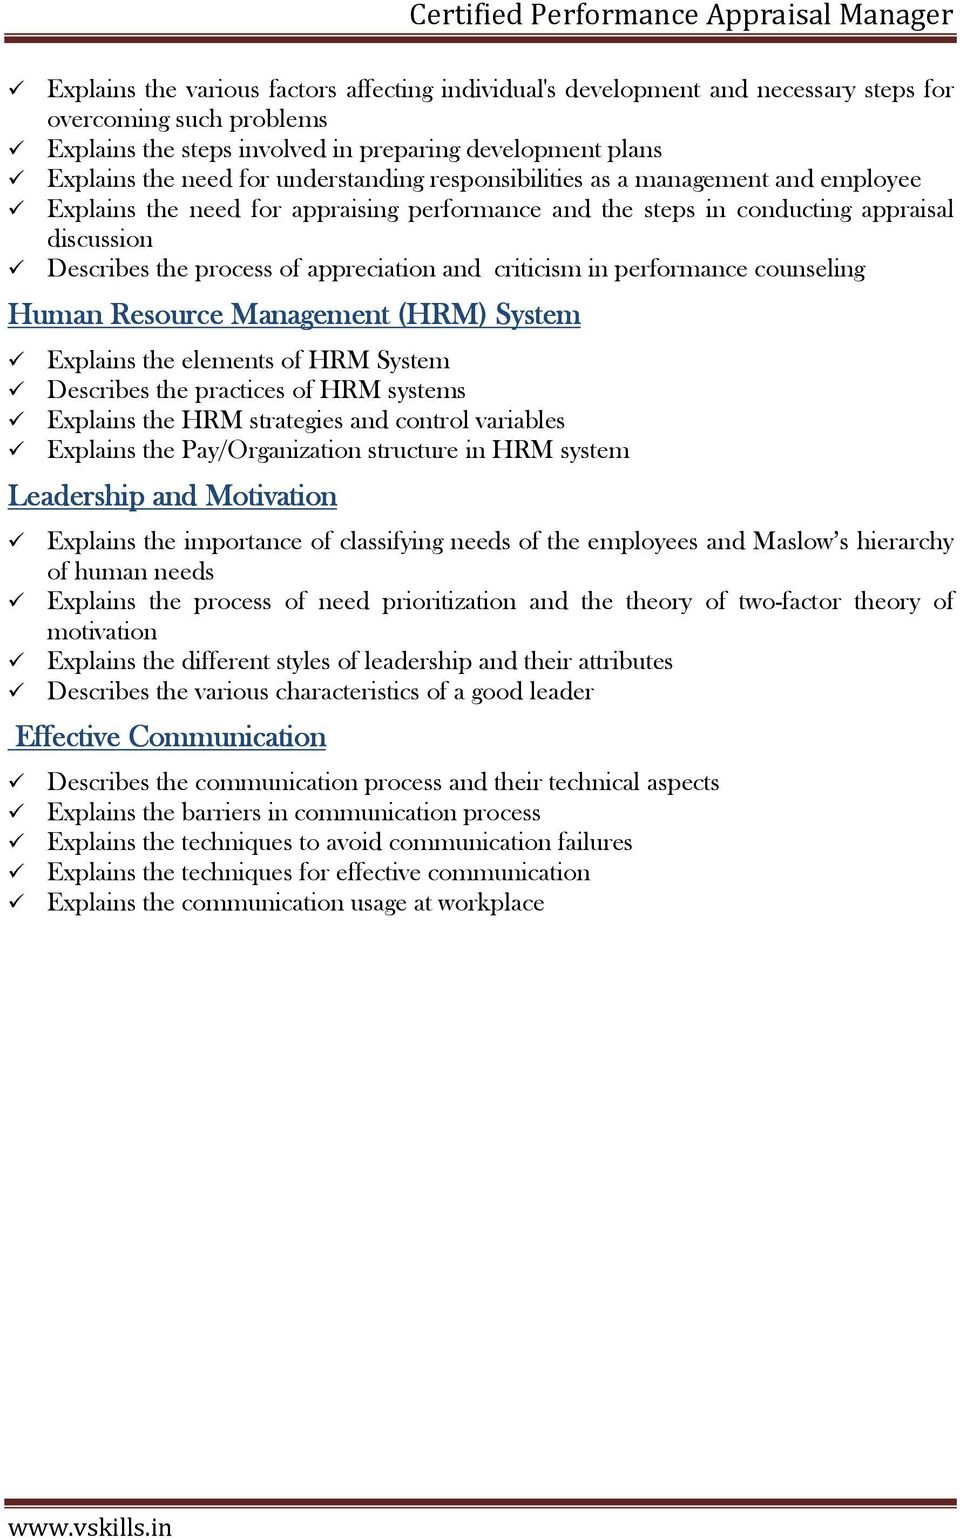 criticism in performance counseling Human Resource Management (HRM) System Explains the elements of HRM System Describes the practices of HRM systems Explains the HRM strategies and control variables